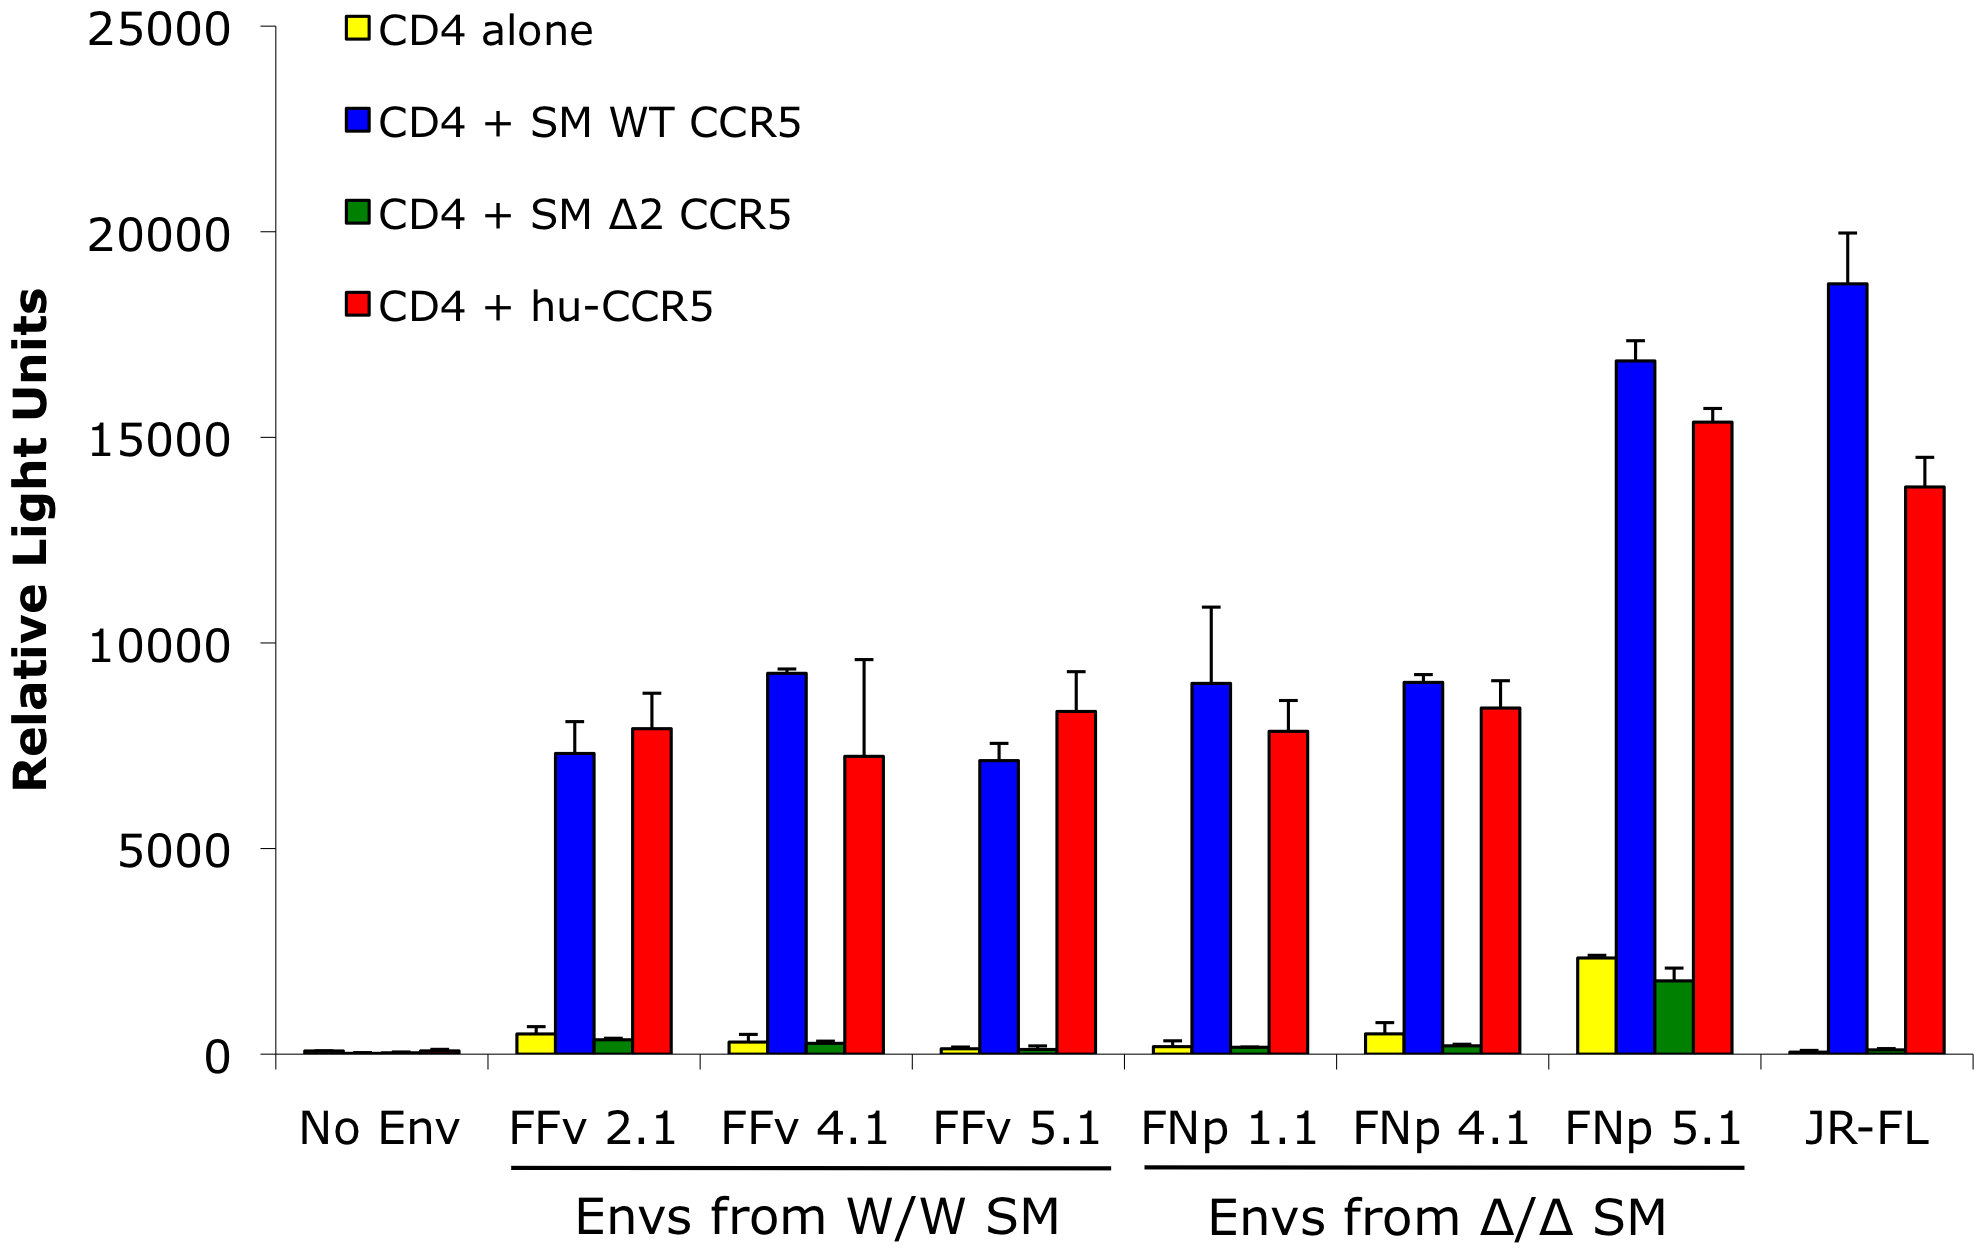 Mutant smCCR5Δ2 does not support SIV infection <i>in vitro</i>.